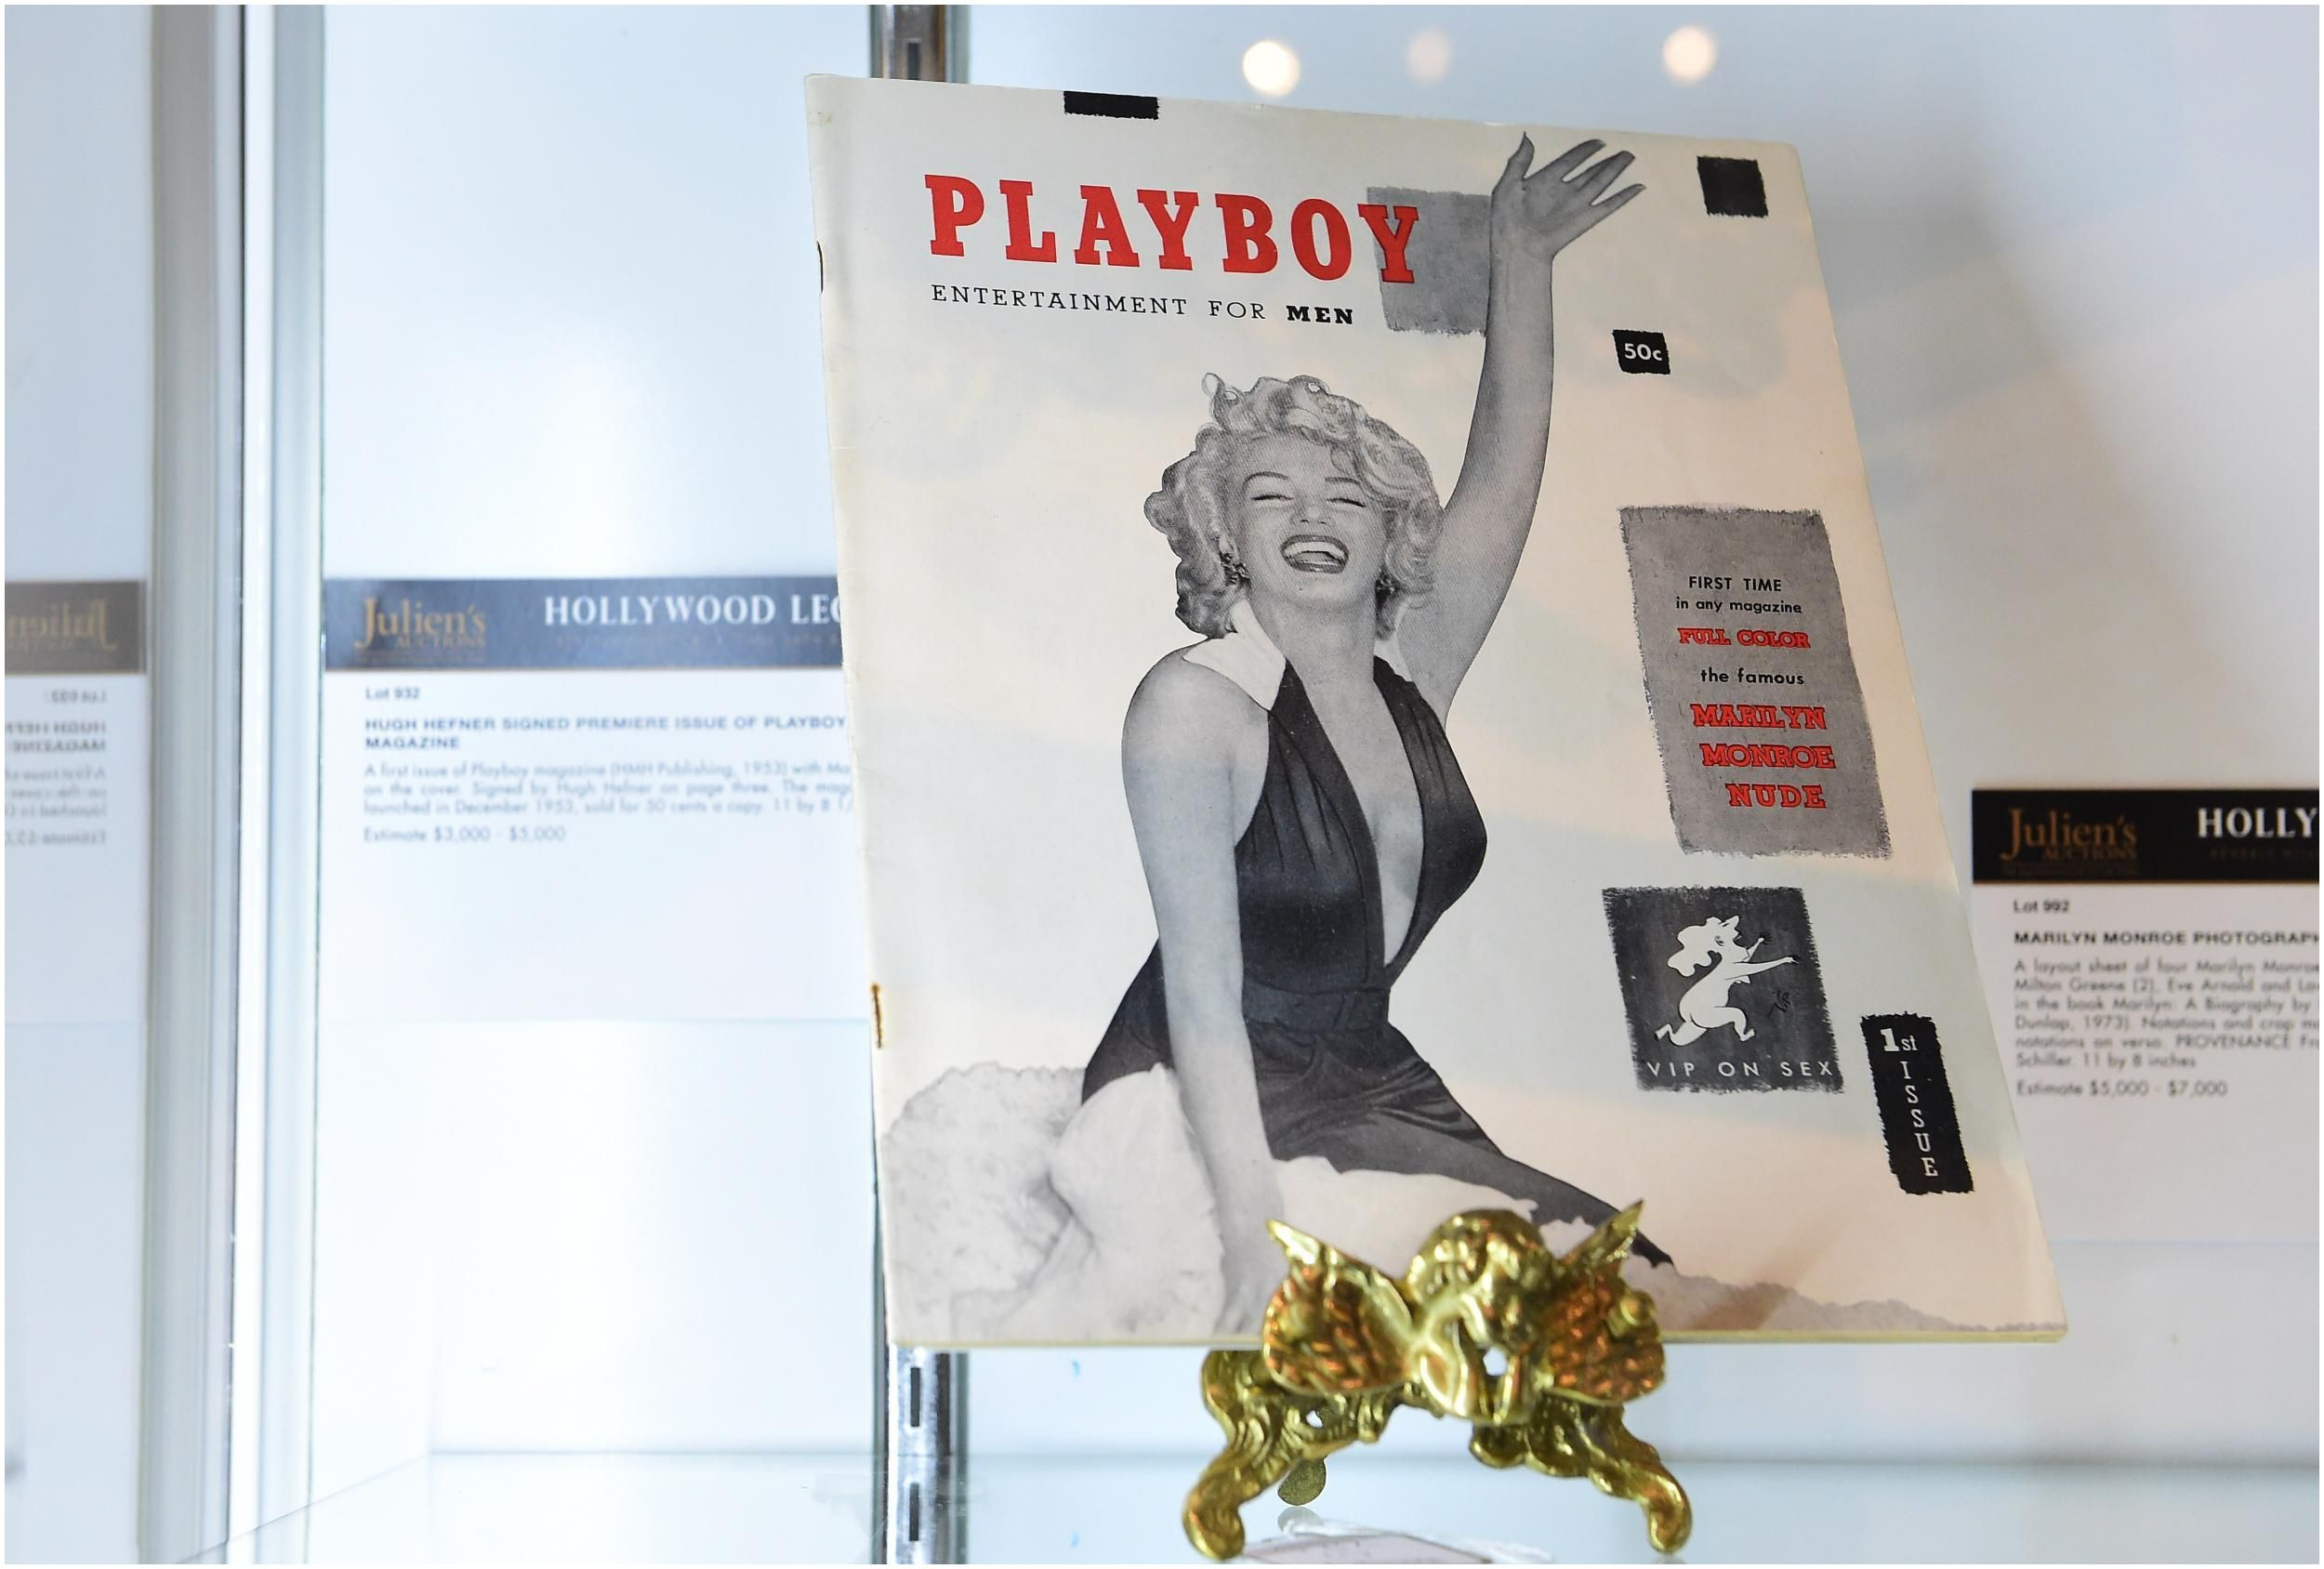 Most Circulated Magazine In the World Playboy Could End Print Magazine after 65 Years Says Report